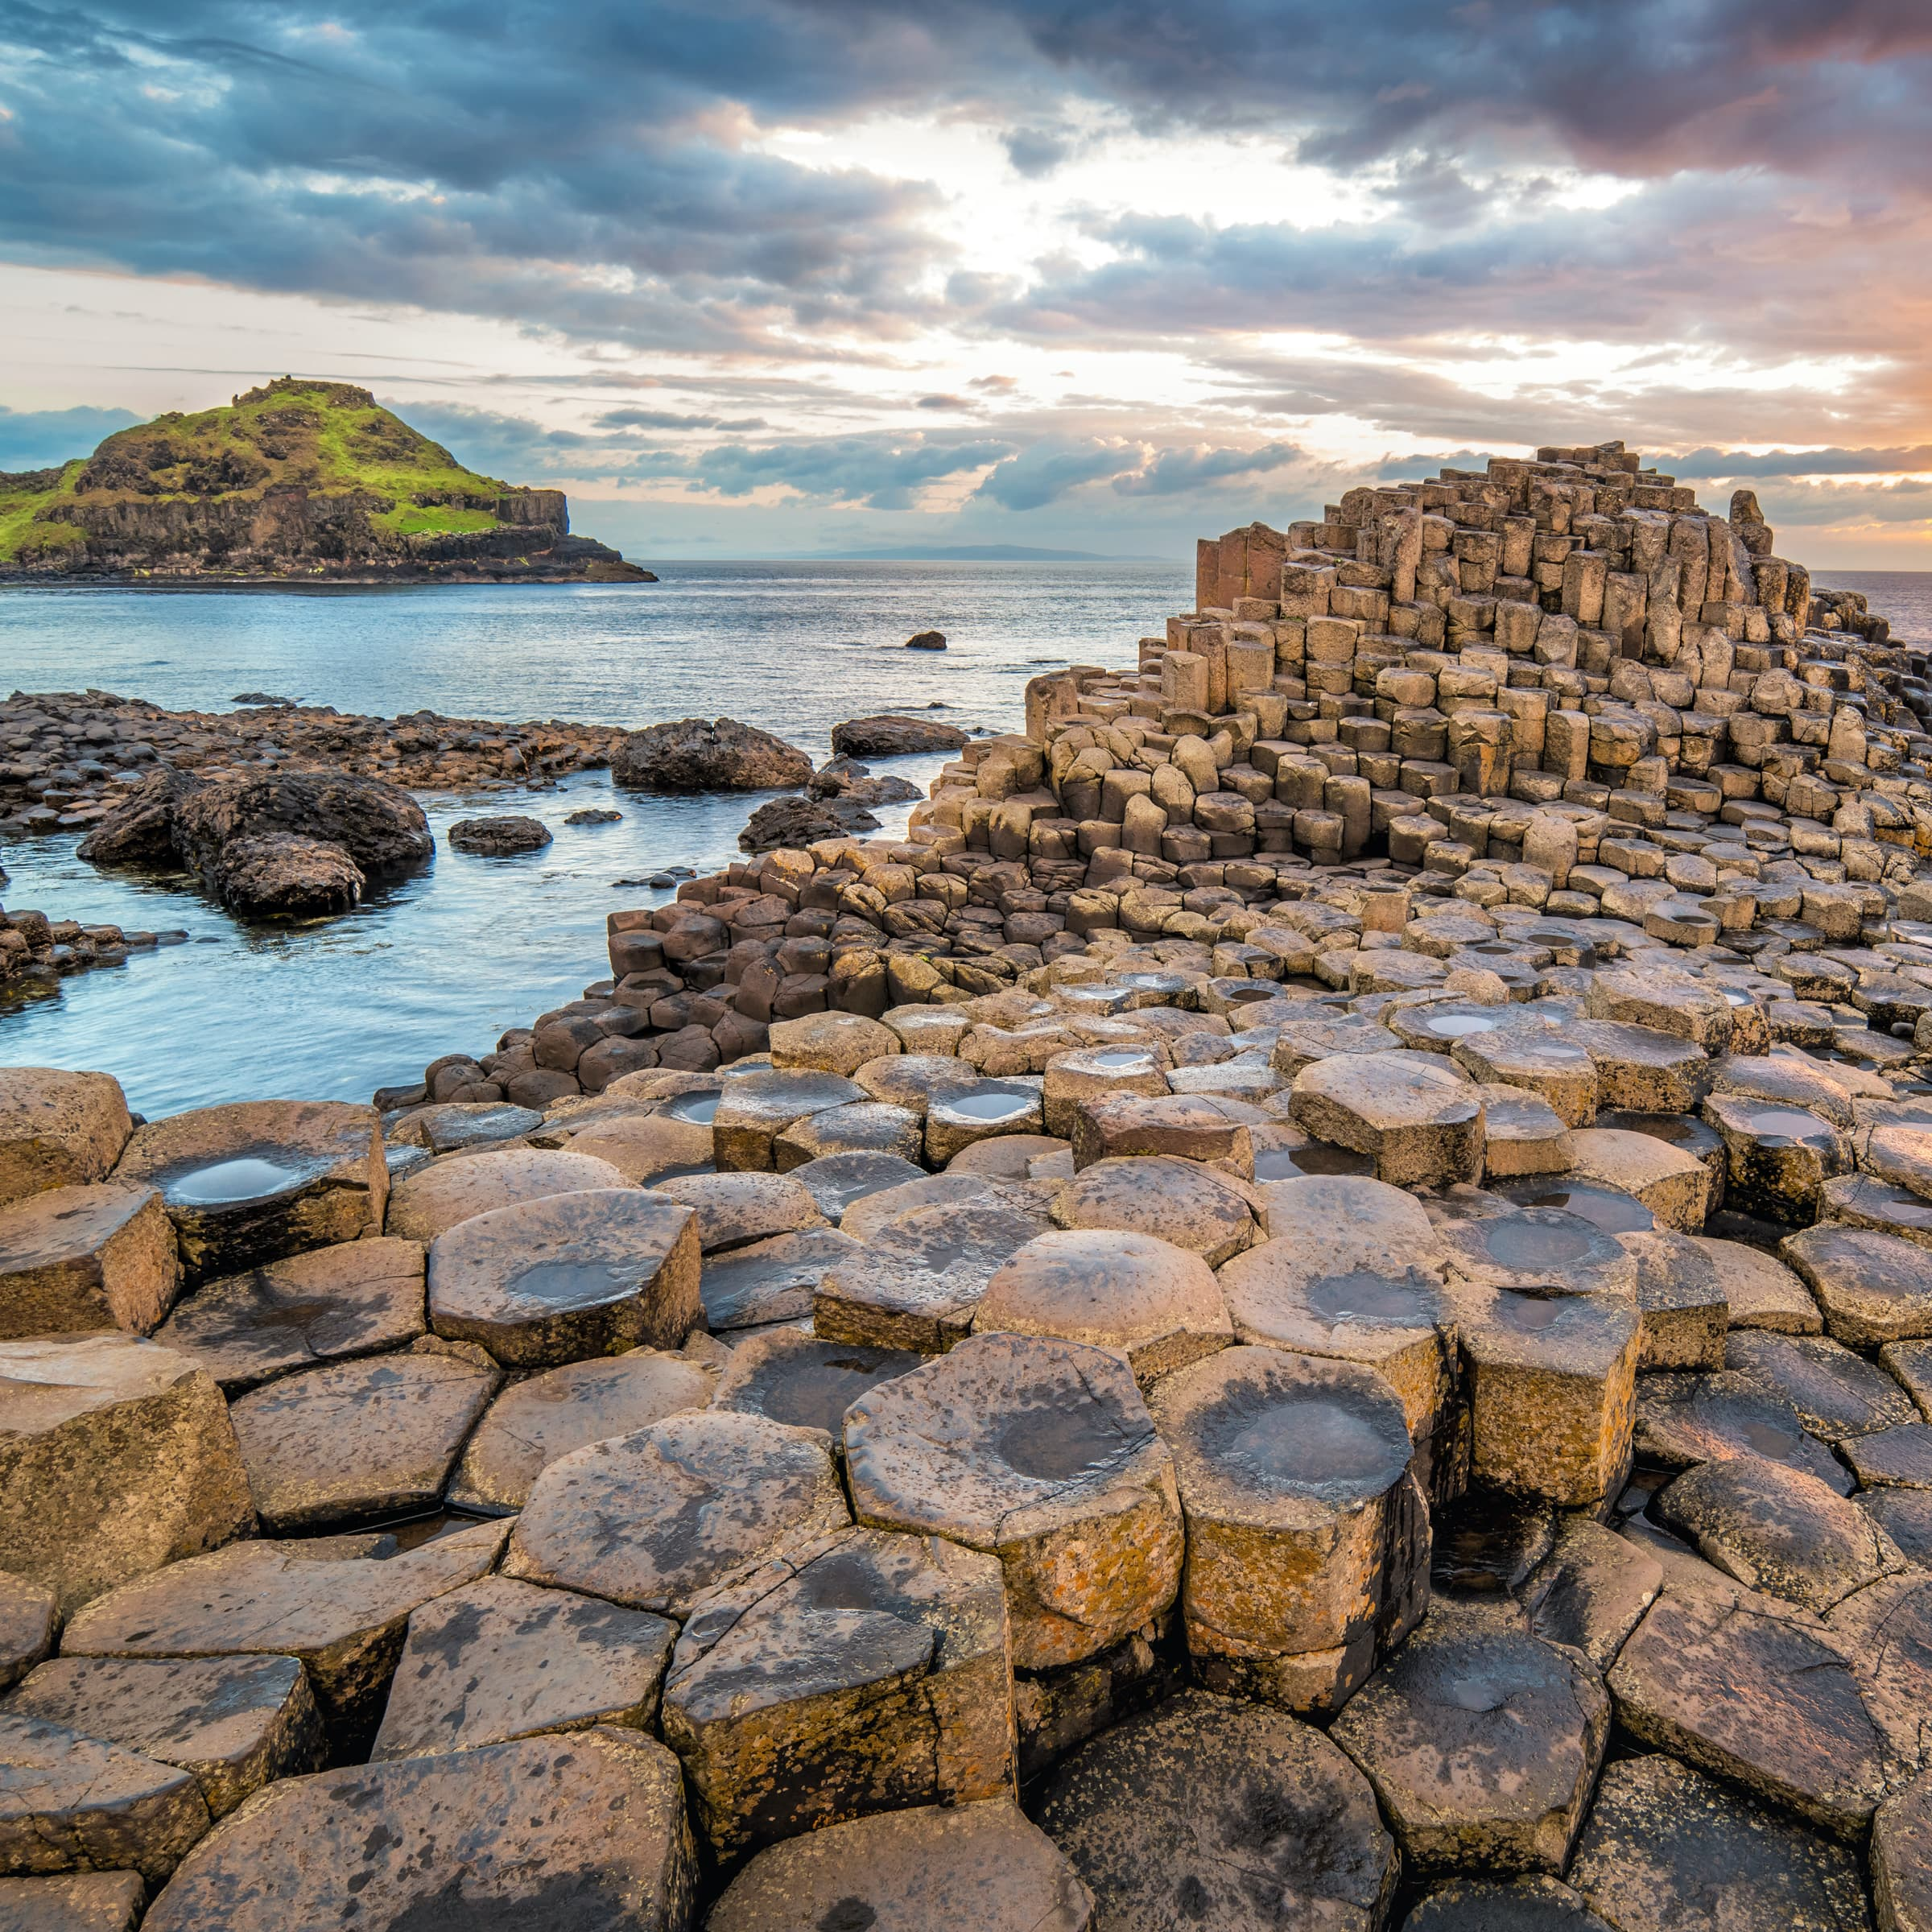 The Best Picturesque Views in the UK